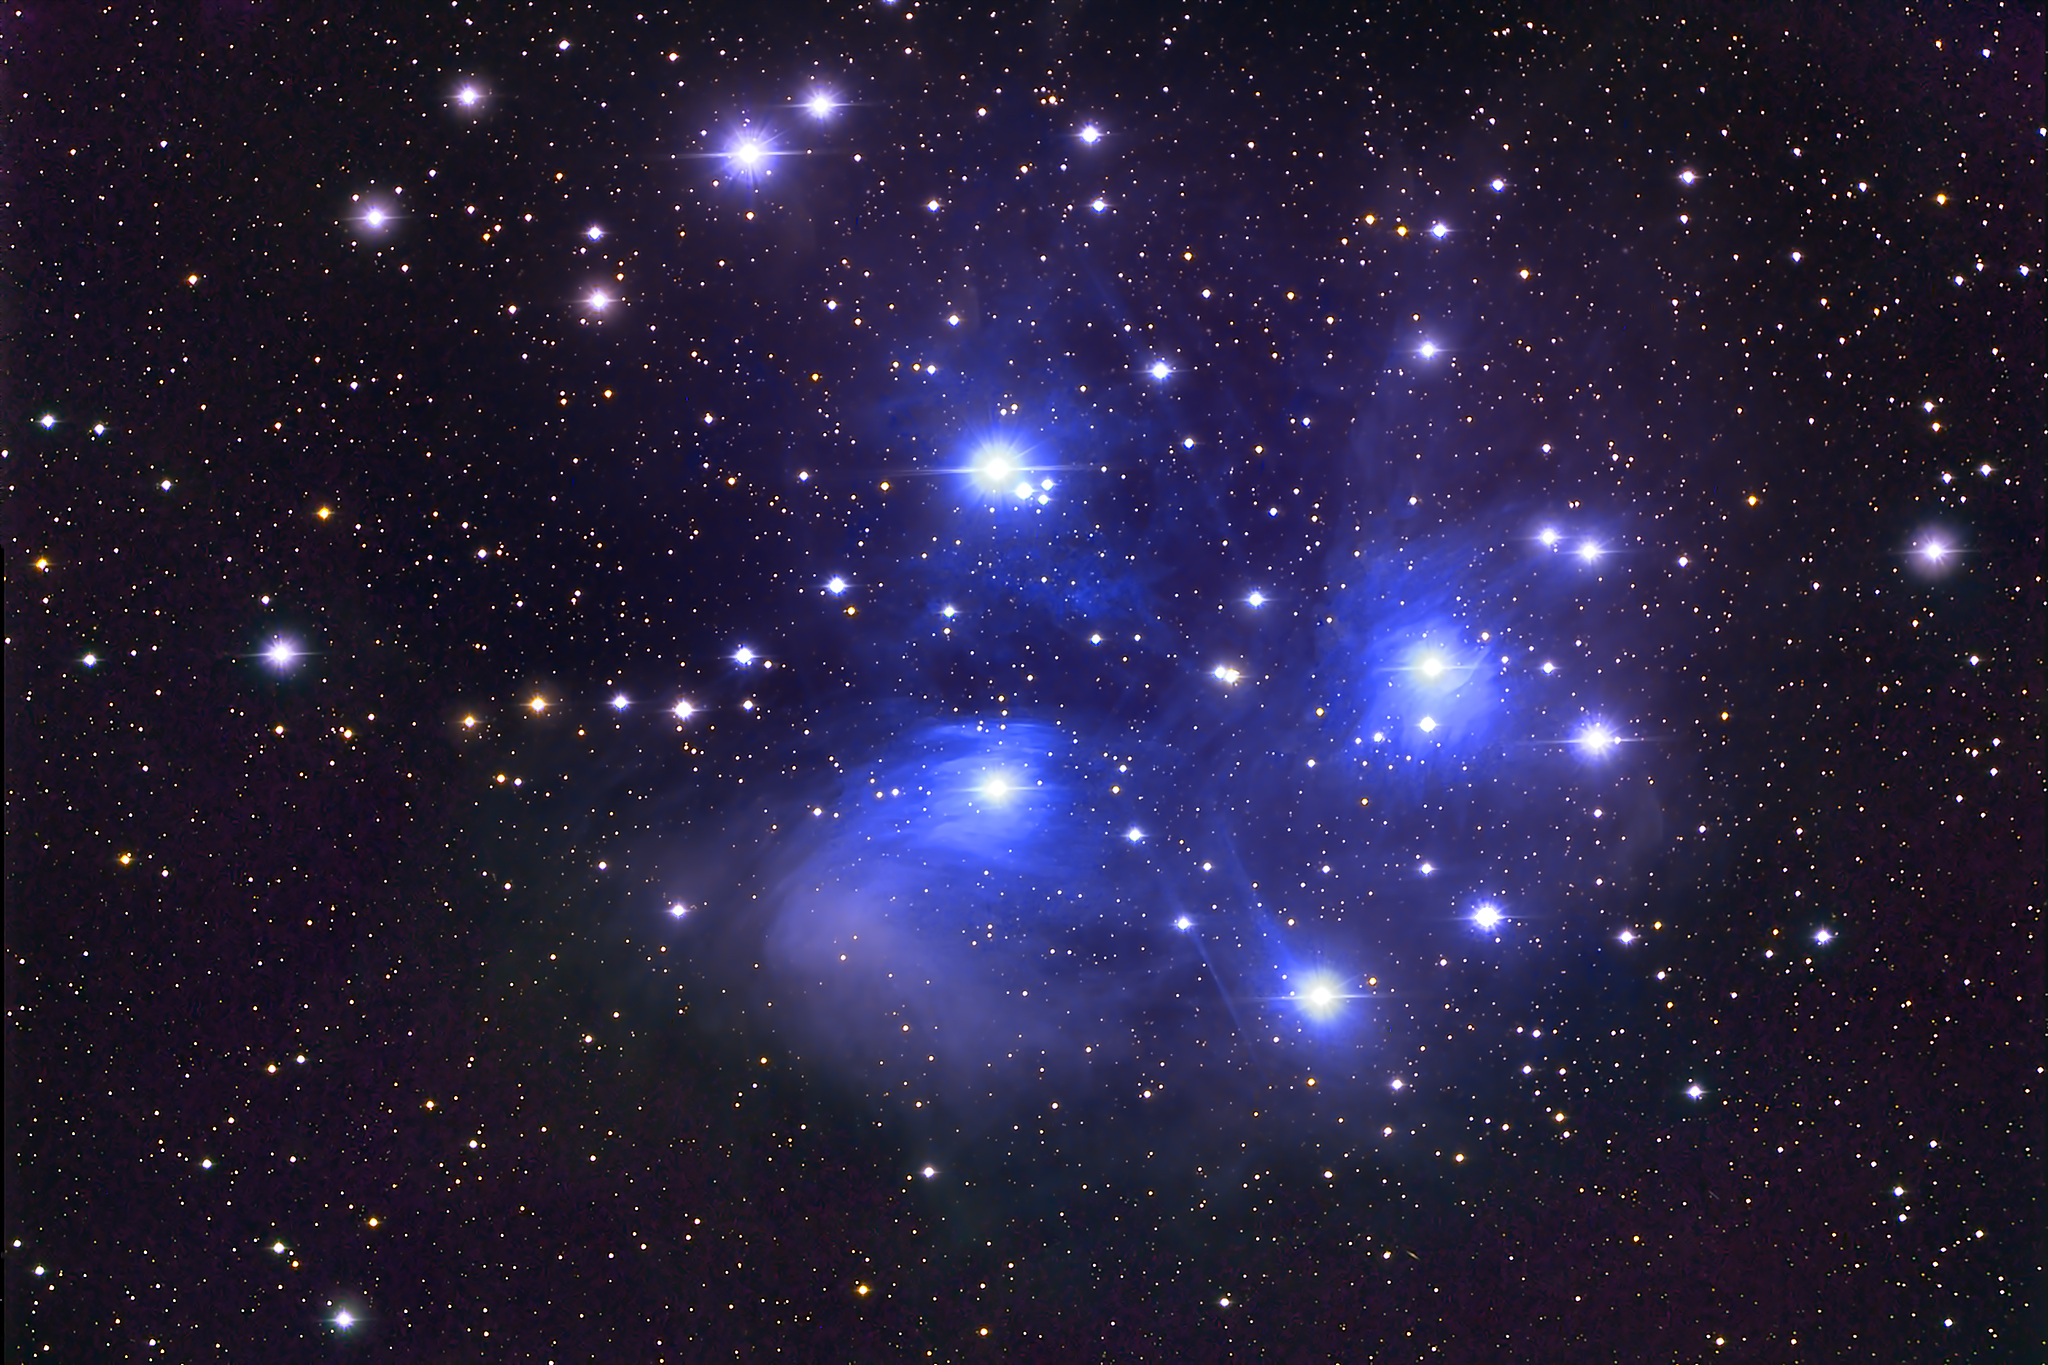 M45 The Pleiades Seven Sisters Deography By Dylan O